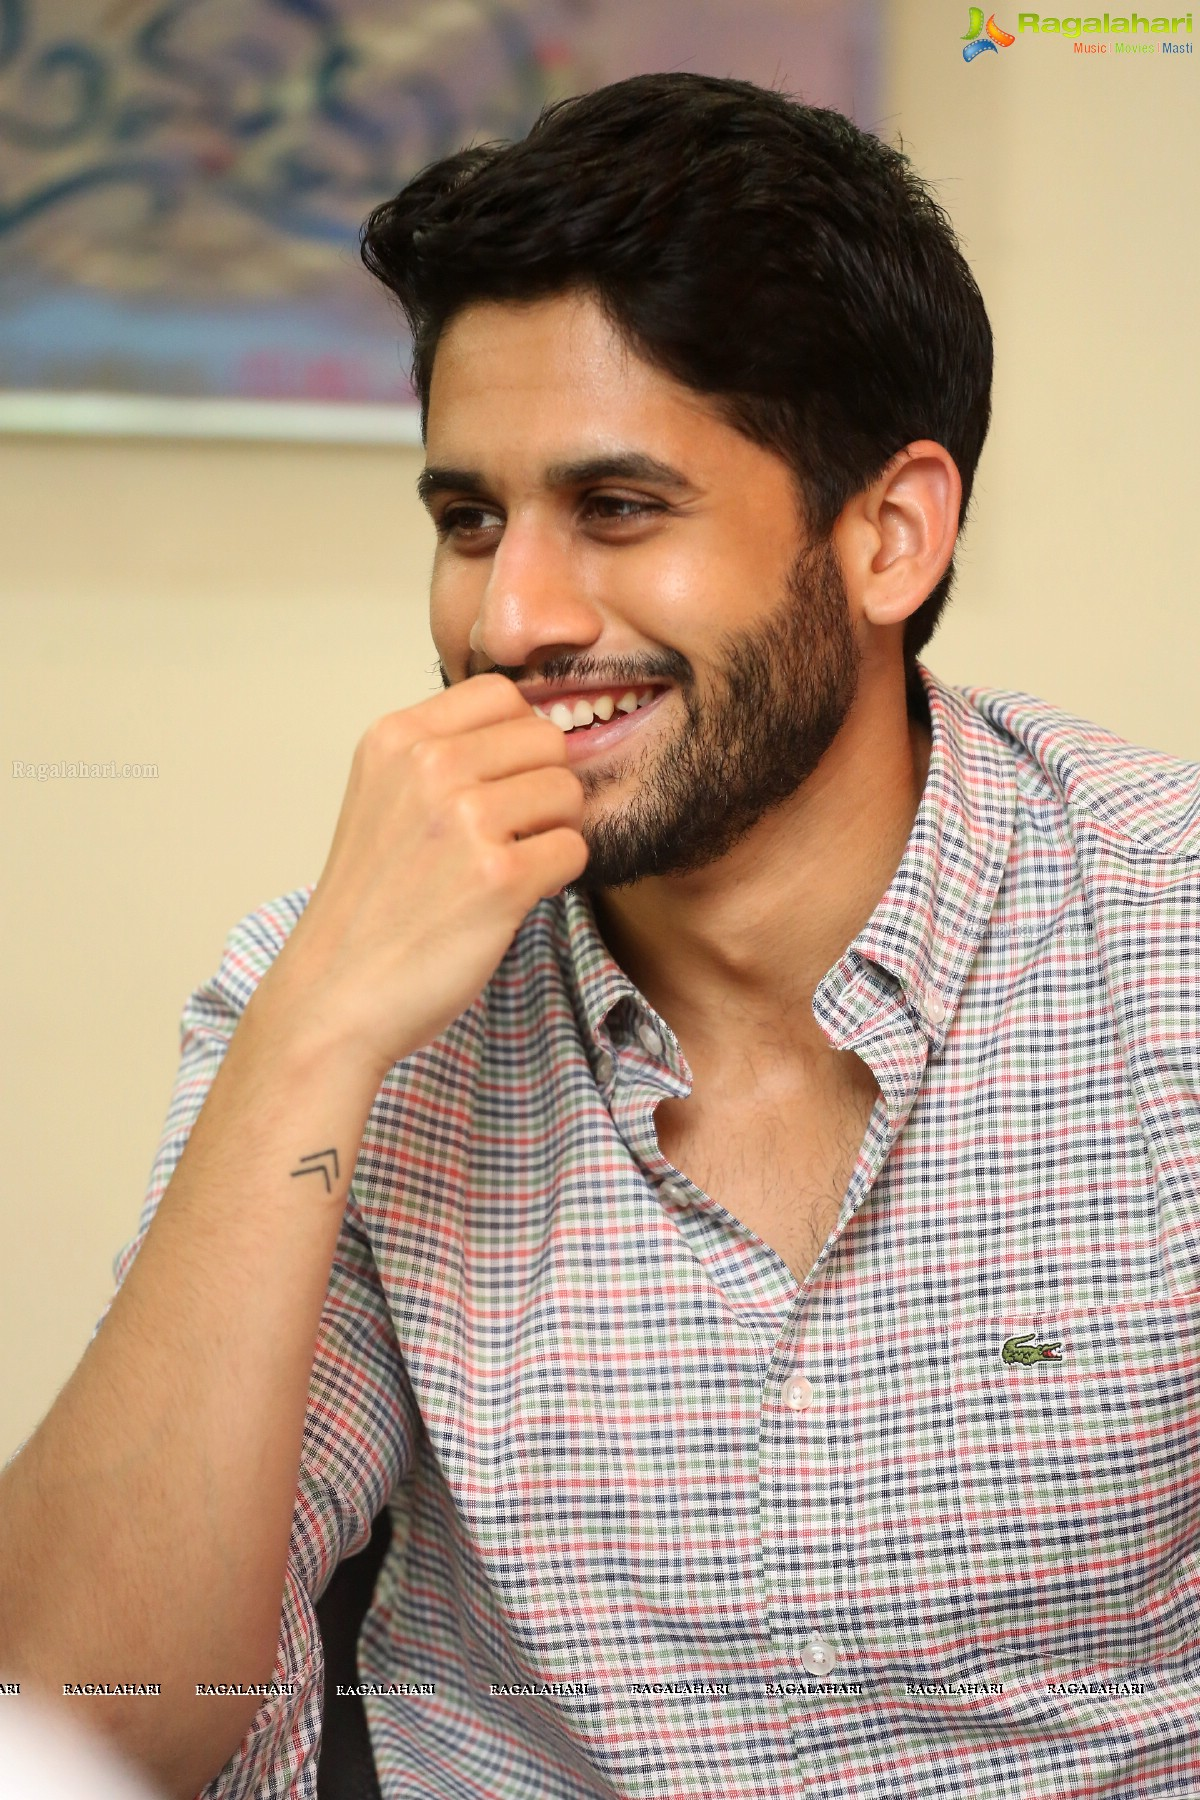 Look - Chaitanya naga stylish wallpapers video